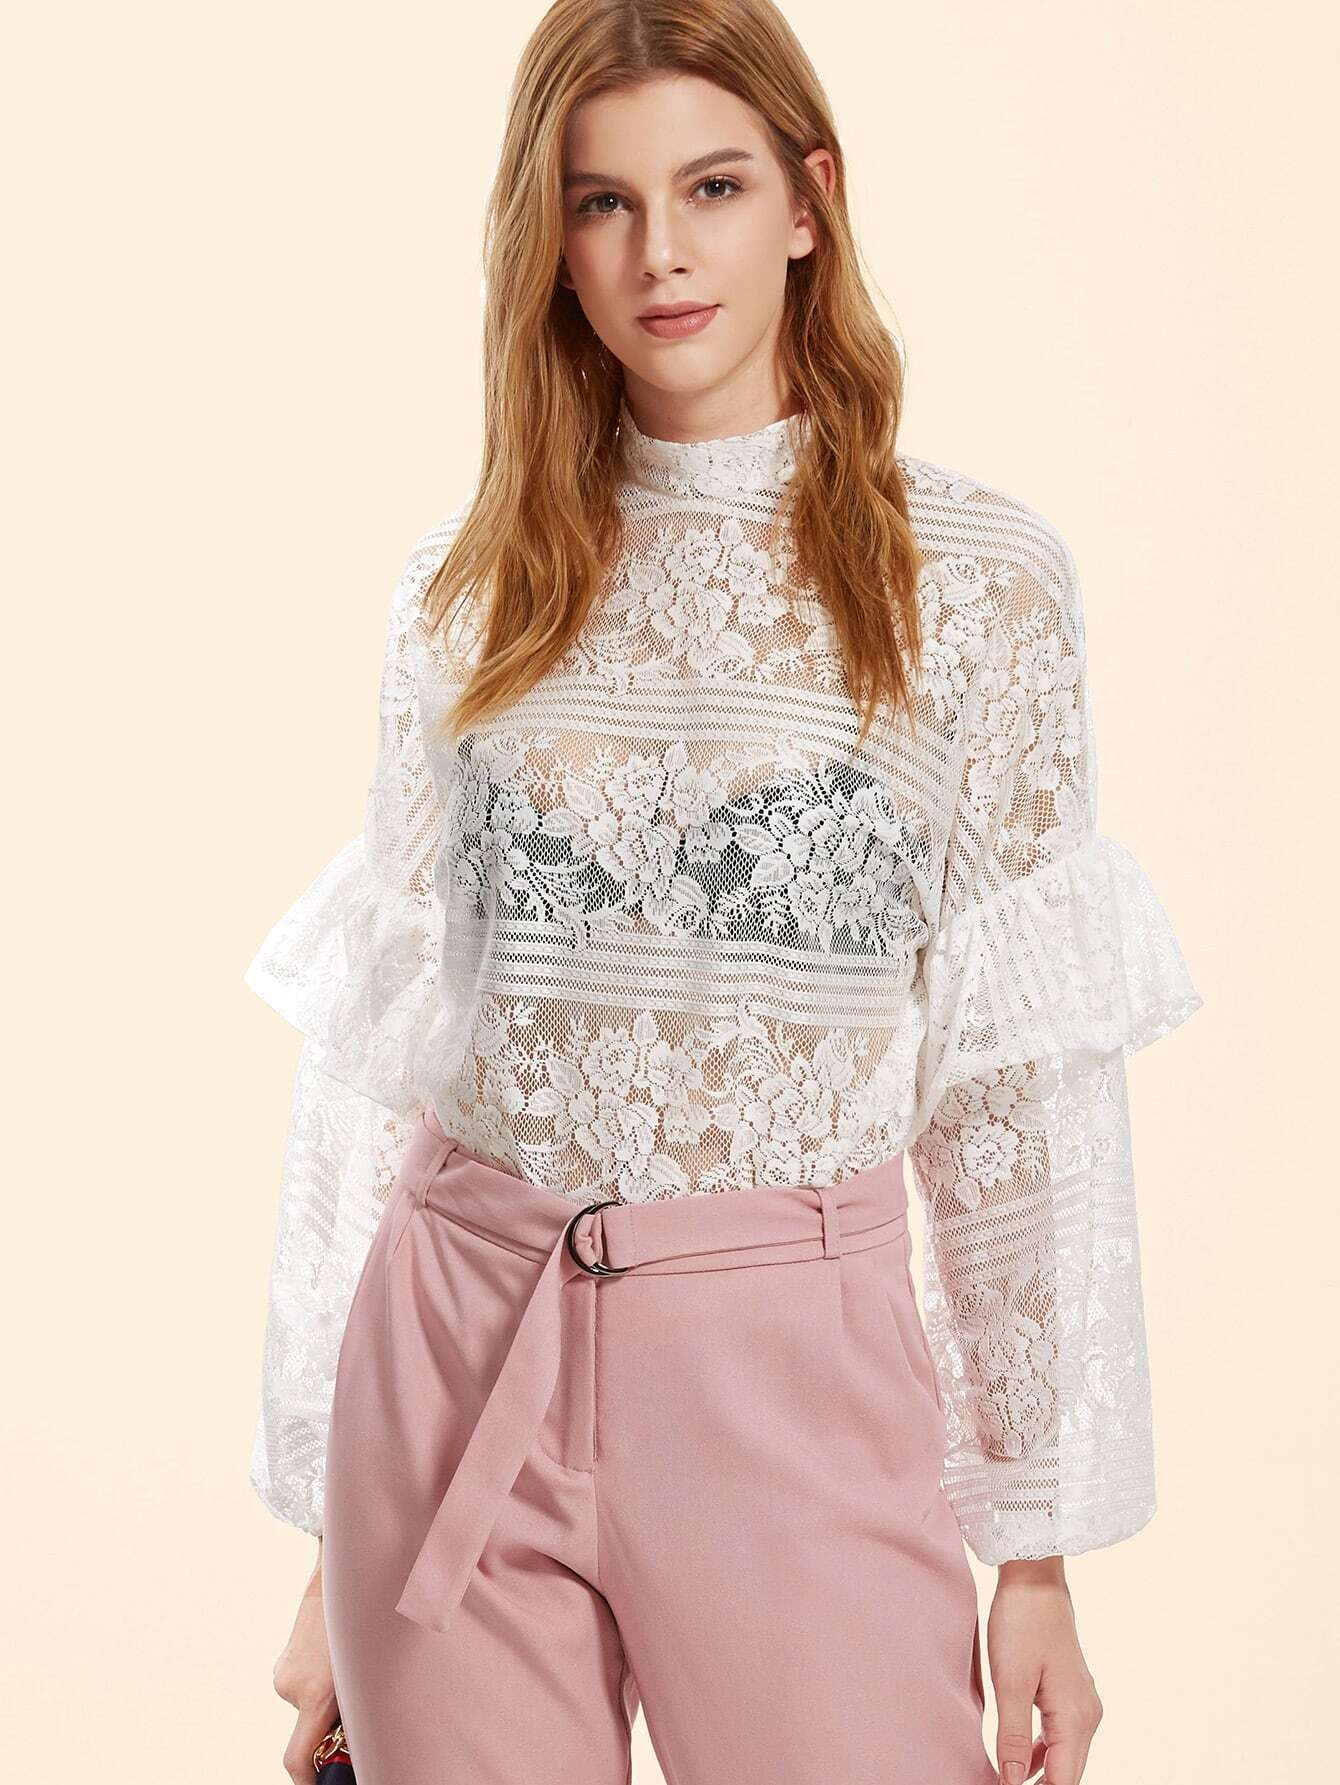 White High Neck Ruffle Trim Floral Lace Top blouse160923707